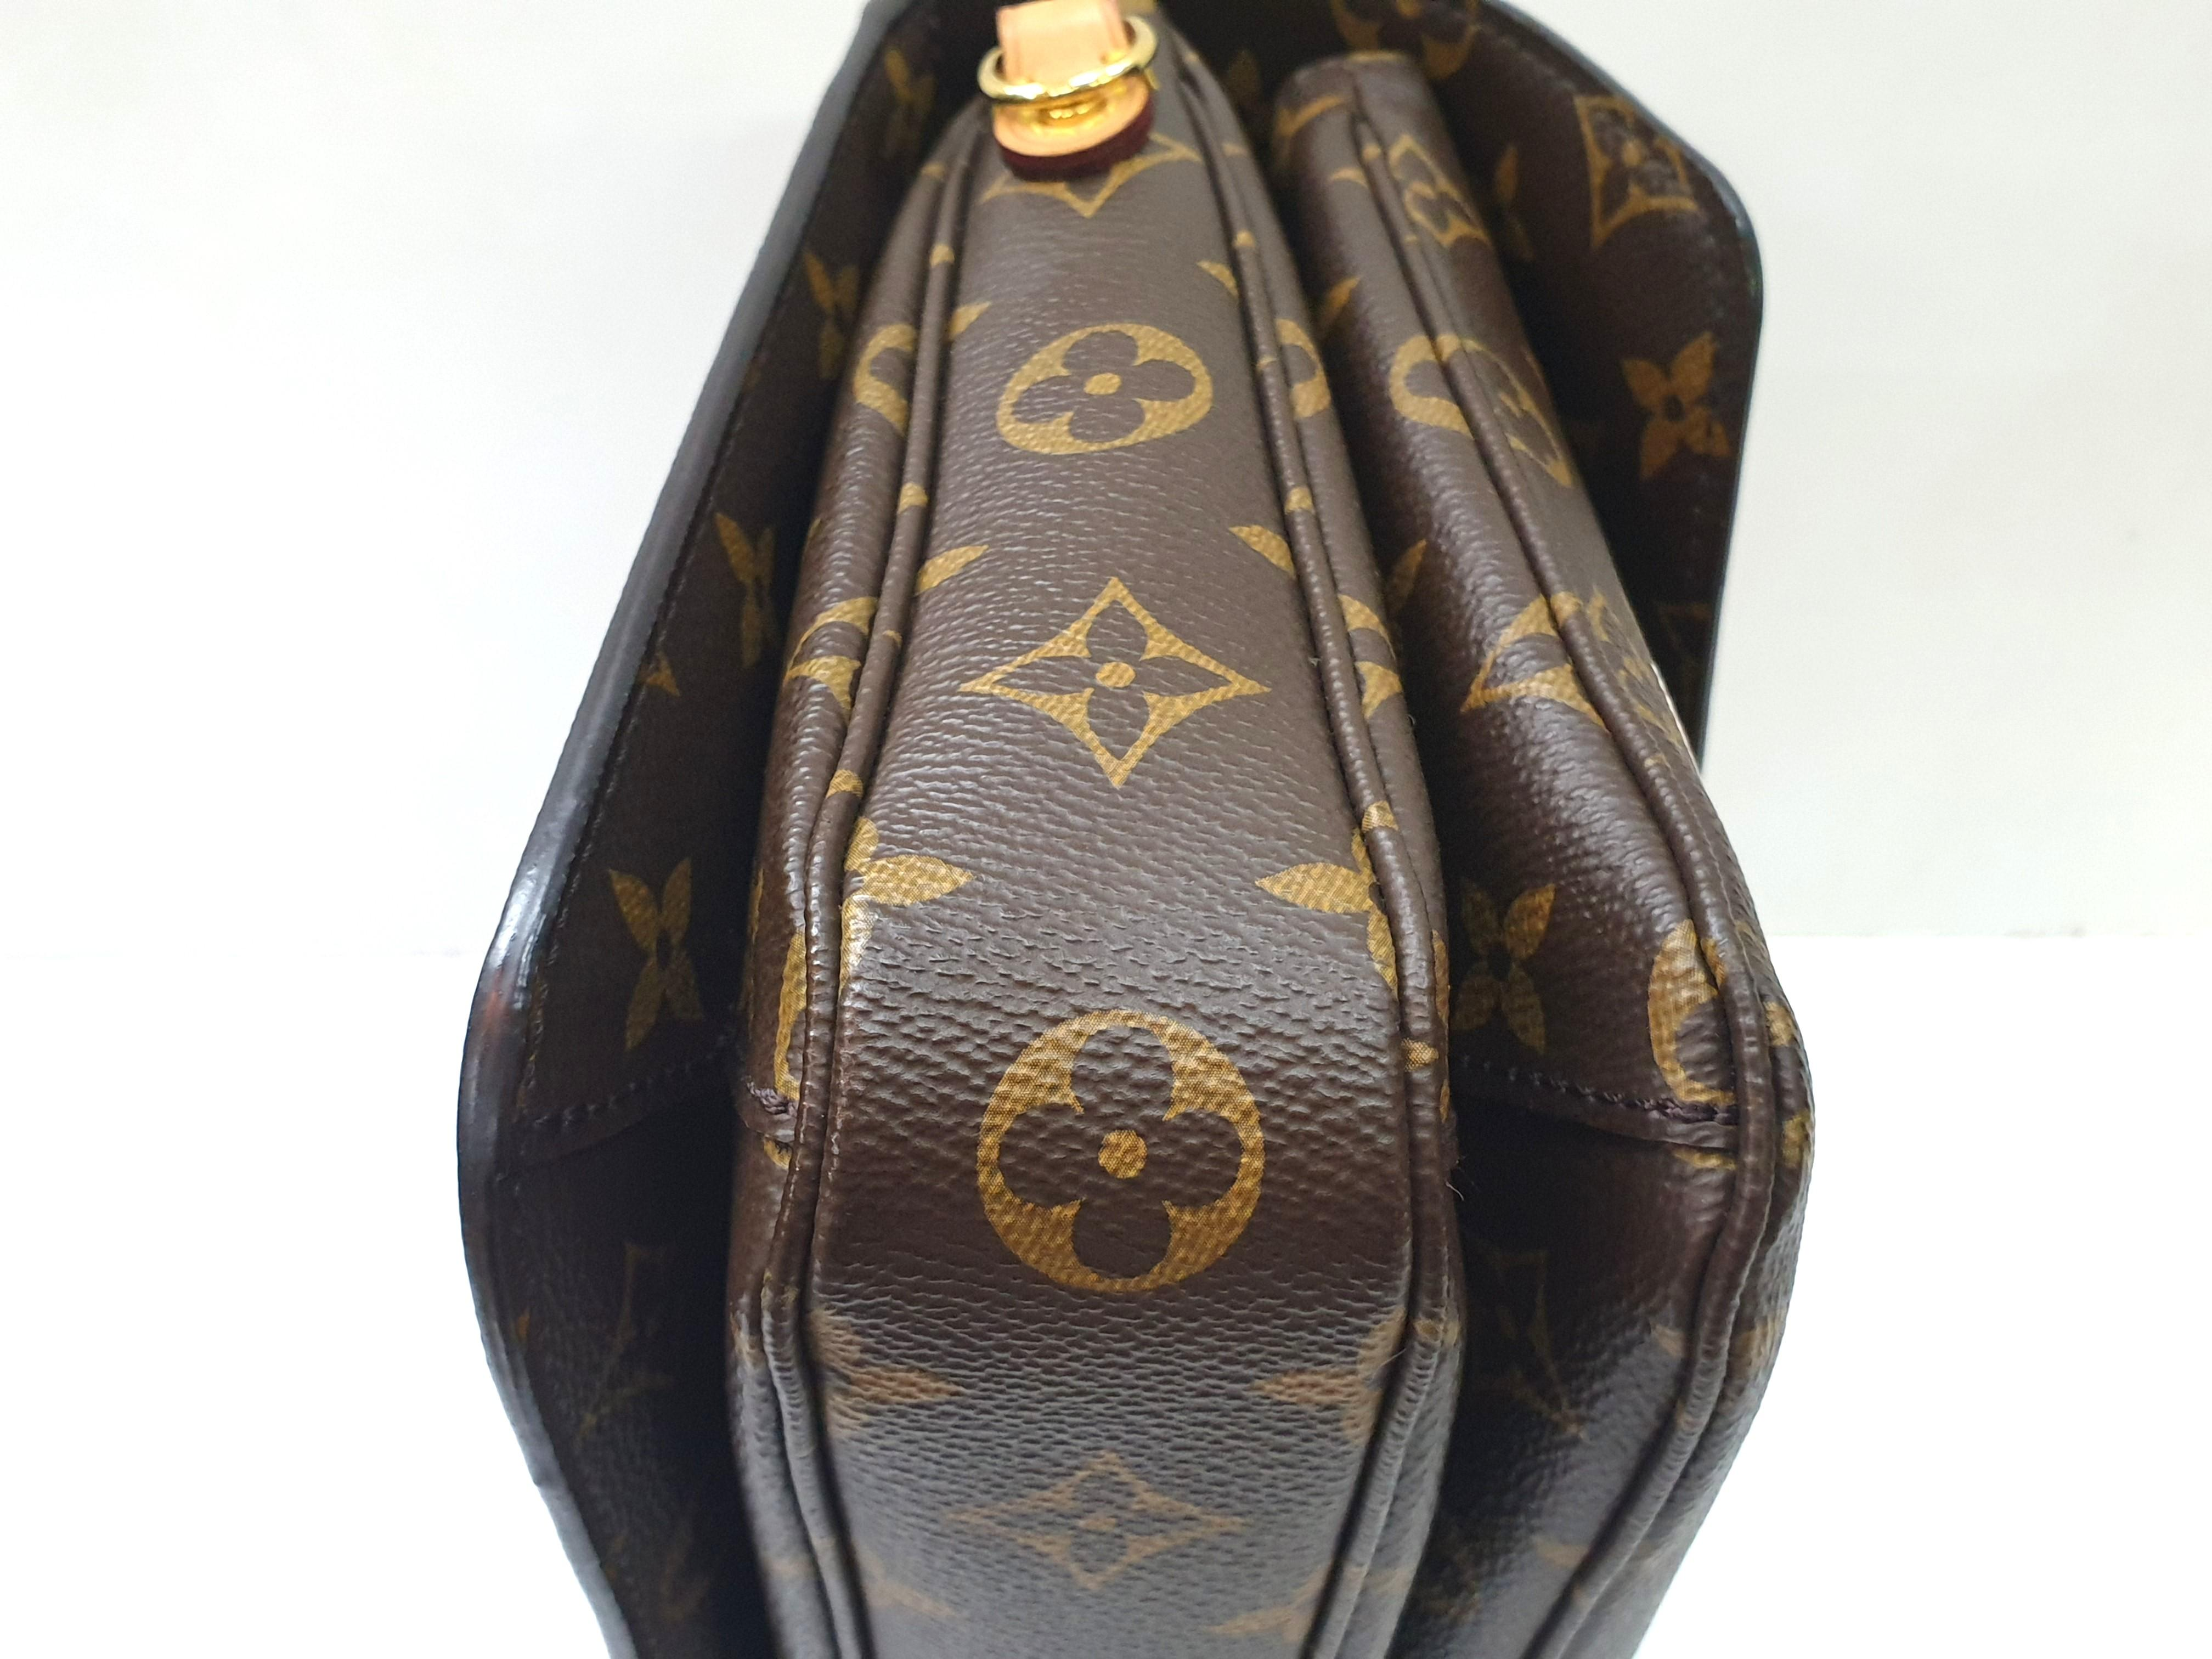 Authentic Ltd Edition Louis Vuitton Pochette Metis M43991 {{Only For Sale}}**No Trade**{{Fixed Price}}**定价**